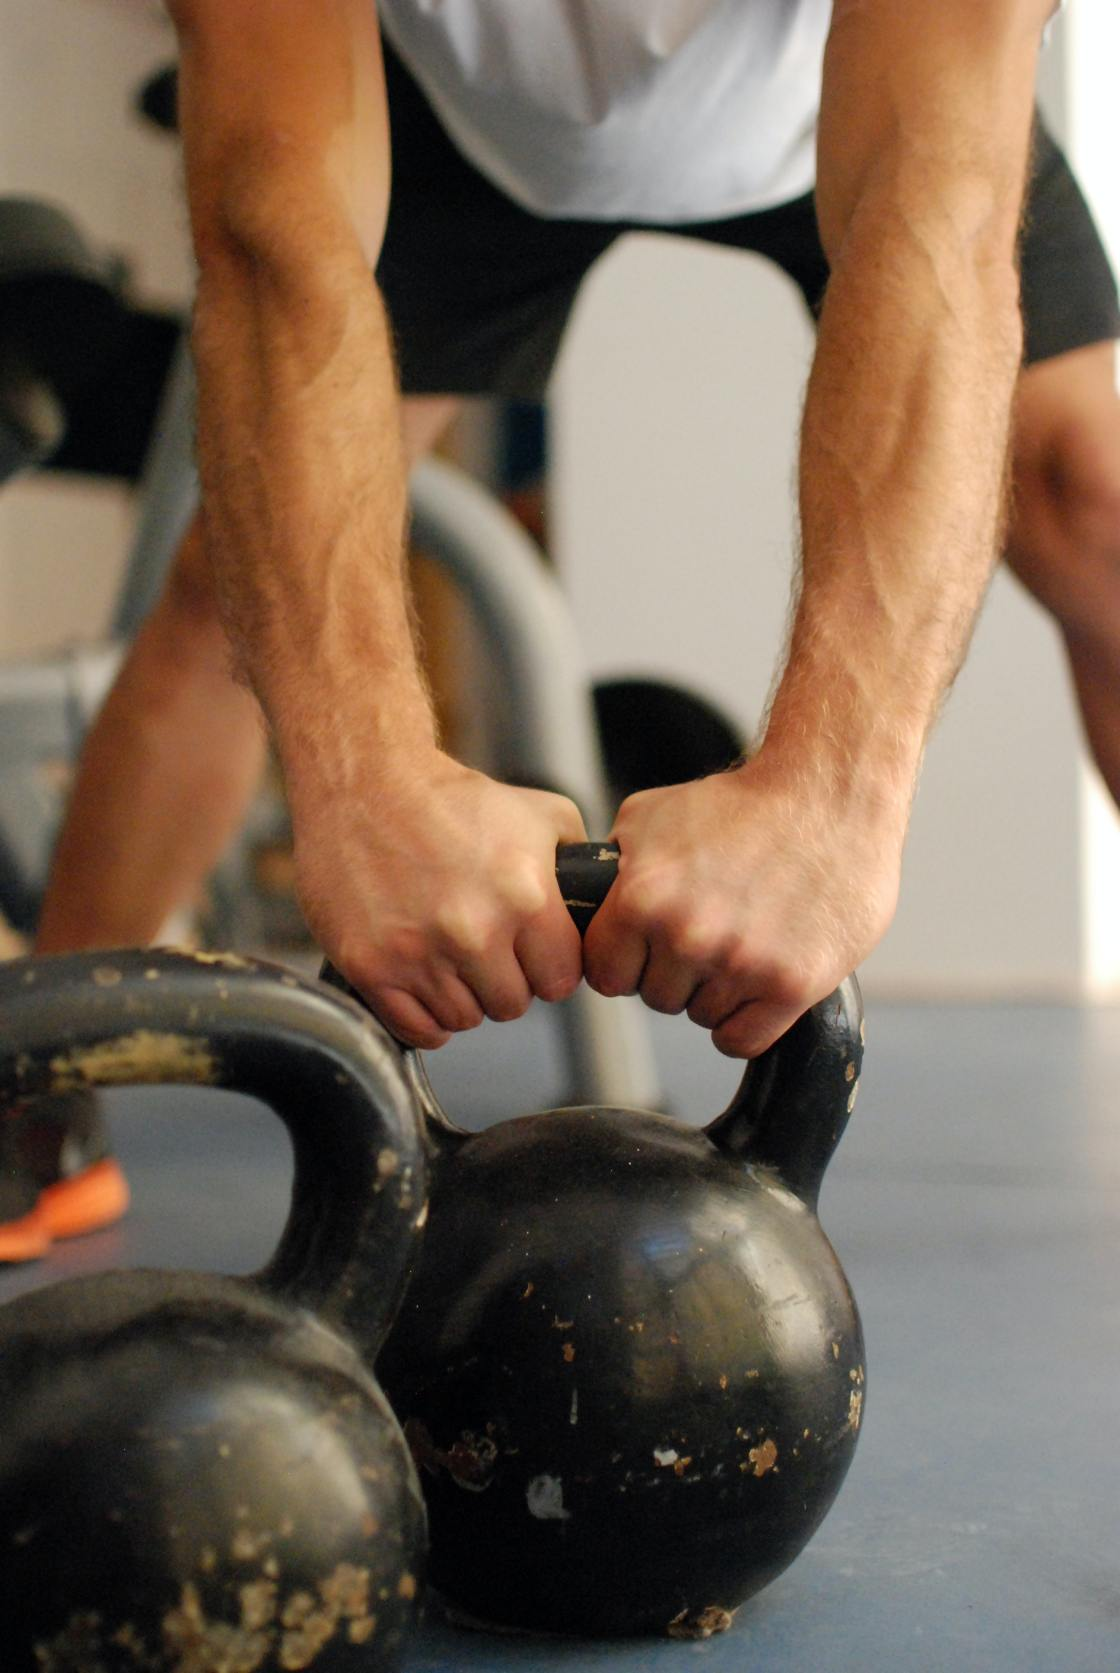 Man holding kettlebells as his workout helping him to get jacked